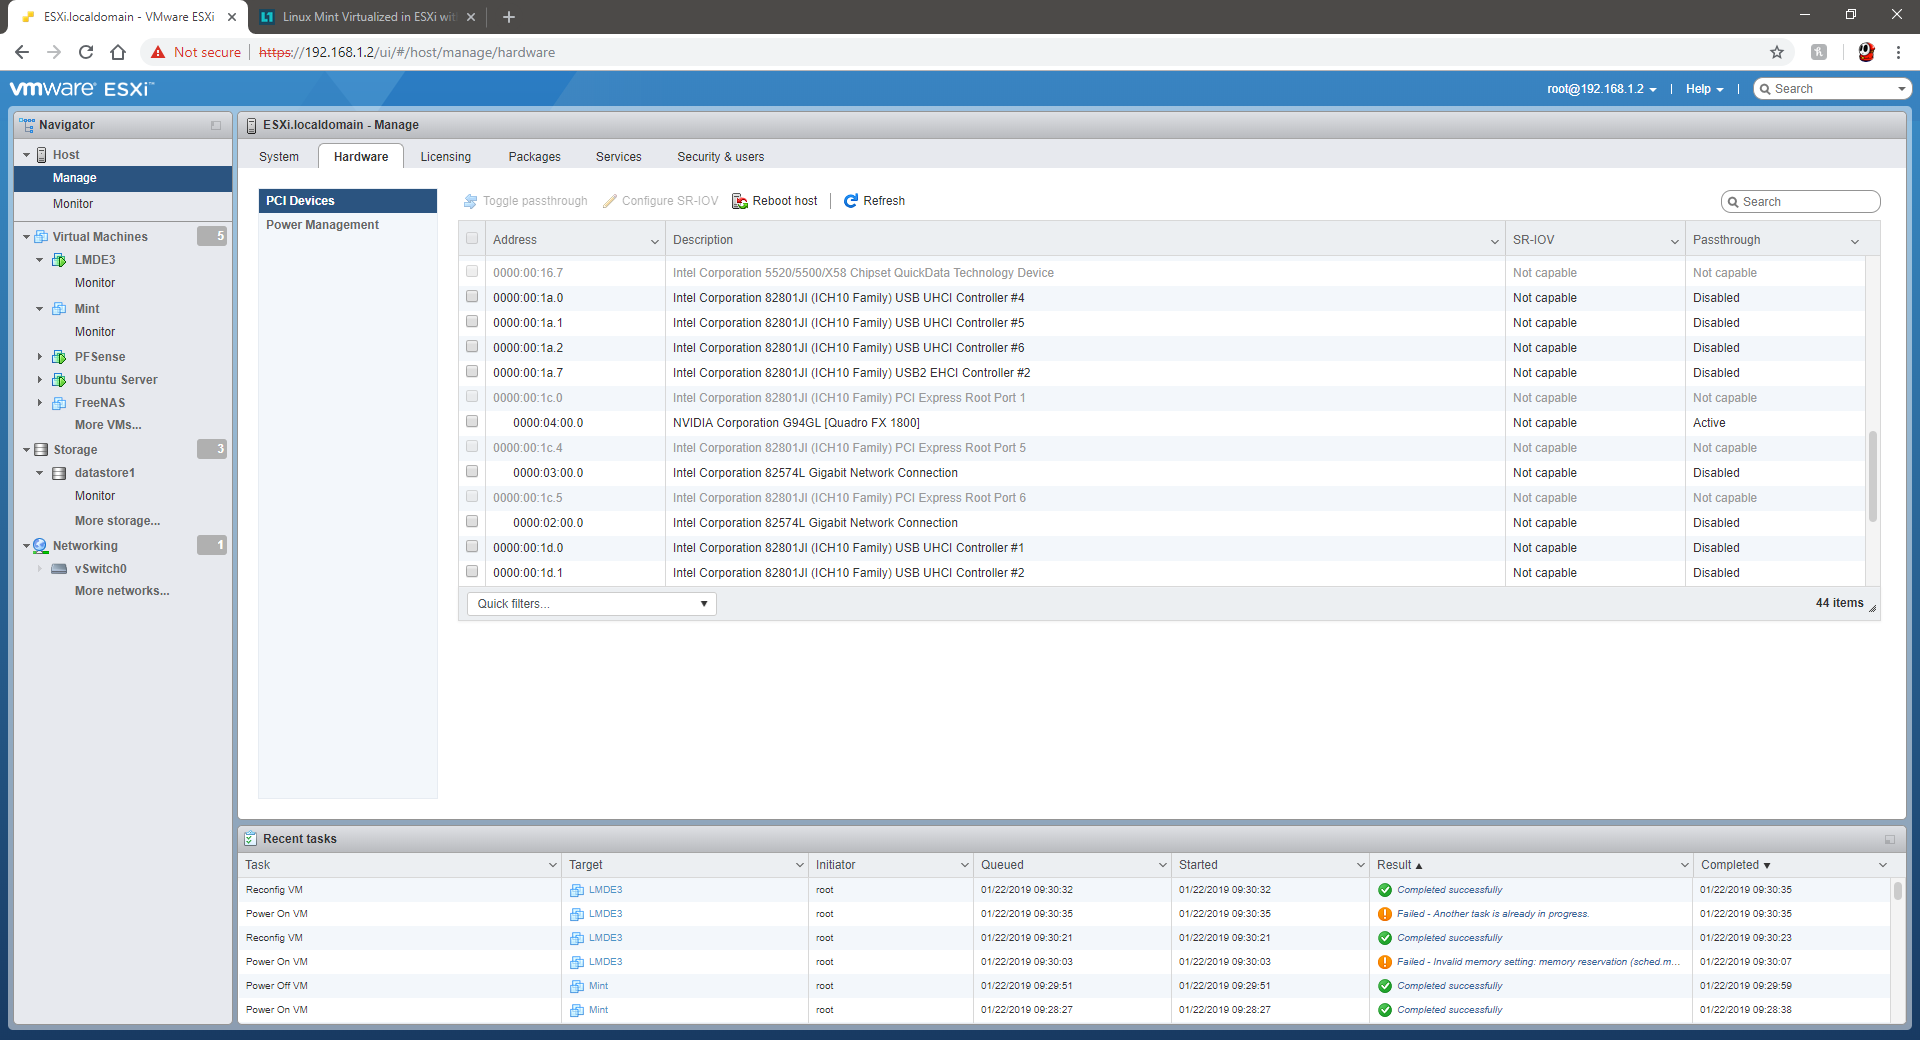 Linux Mint Virtualized in ESXi with GPU Passthrough Problem - Linux